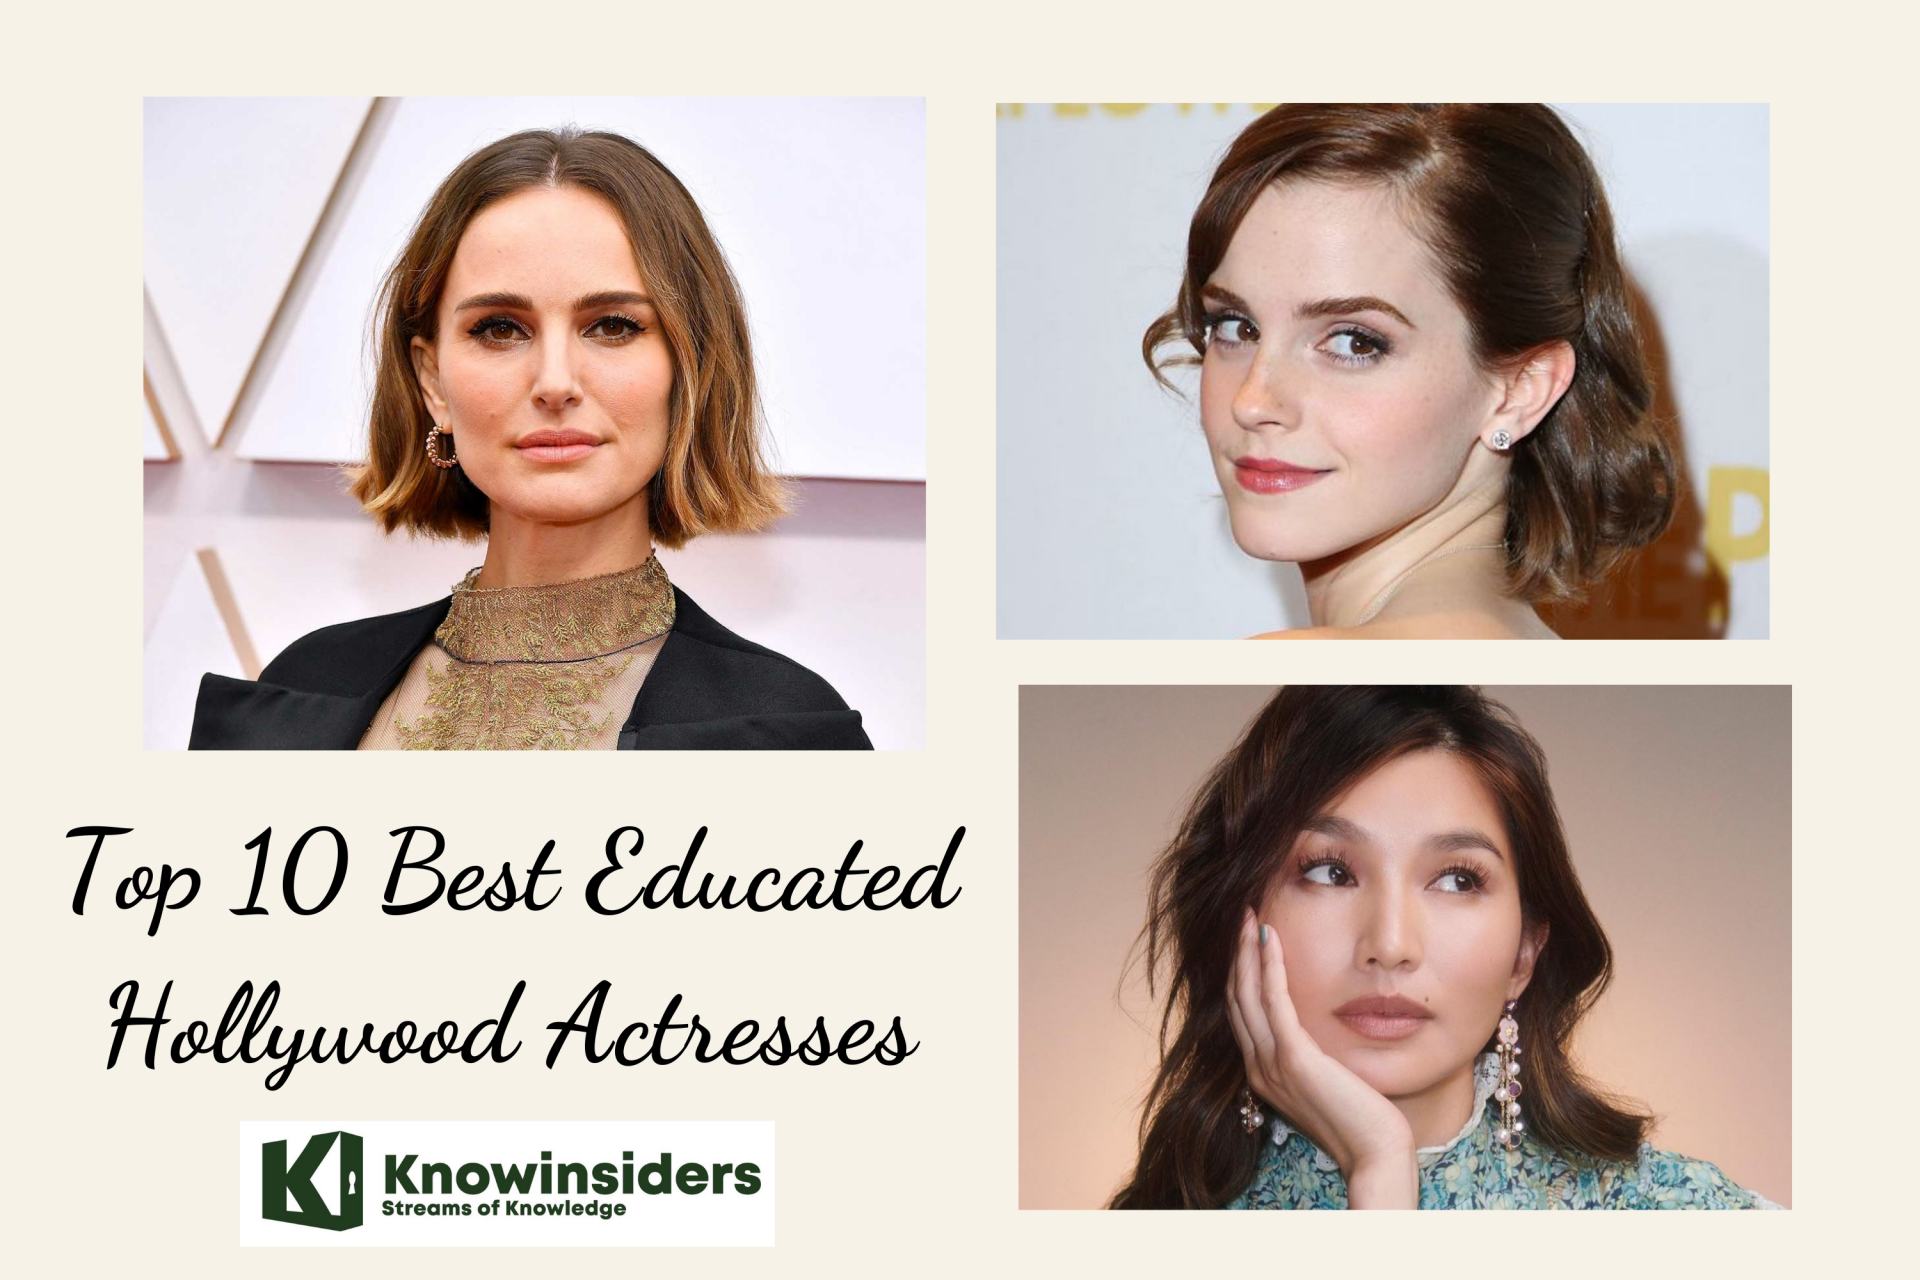 Top 10 Best Educated Hollywood Actresses